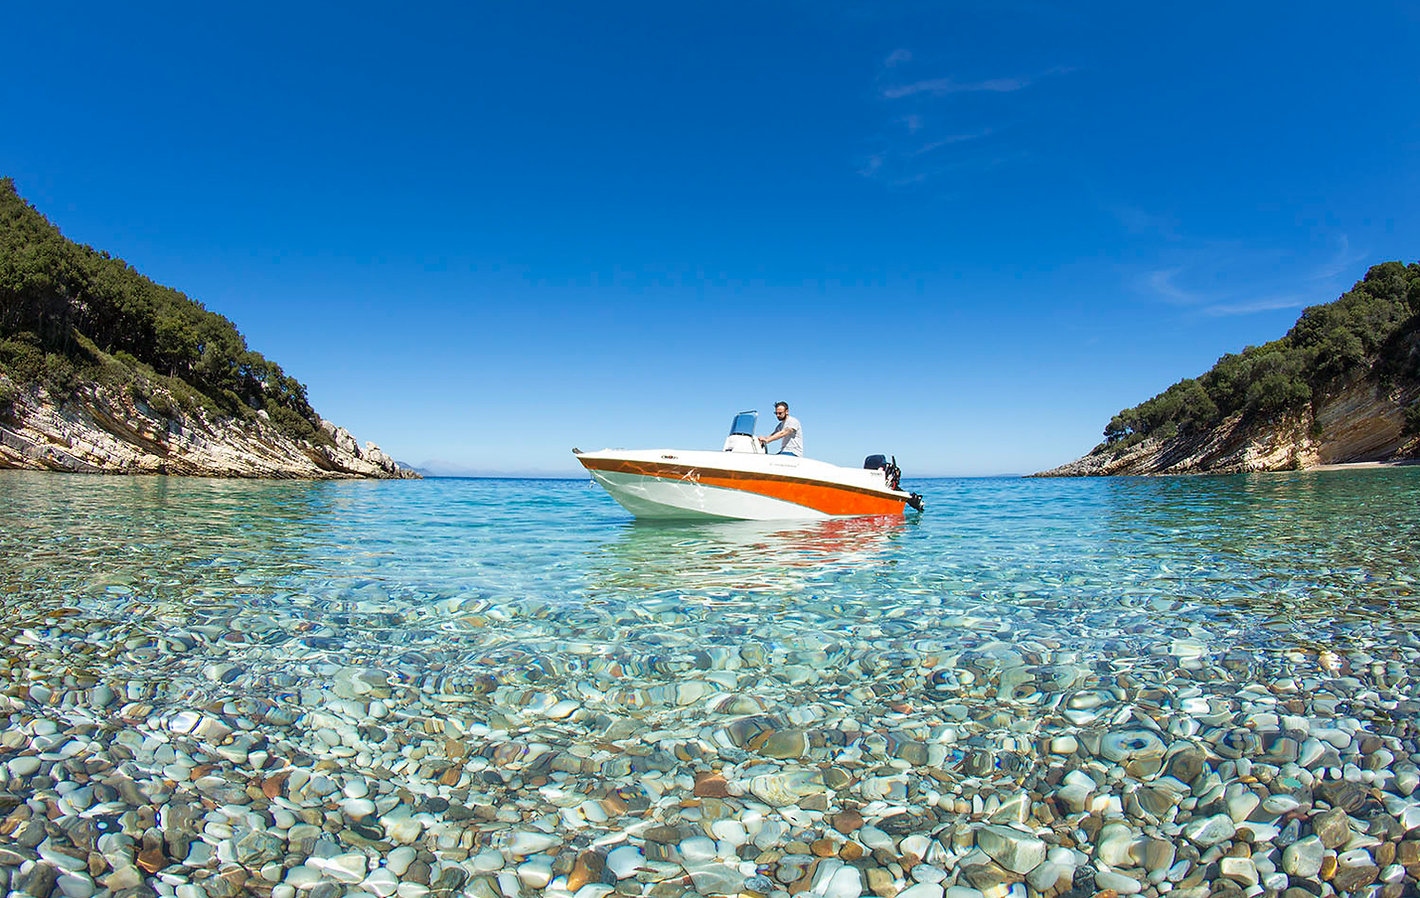 Our boats to rent in ibiza, you dont need license or qualificatión. You can hire one Yellowboat cheap prices in ibiza